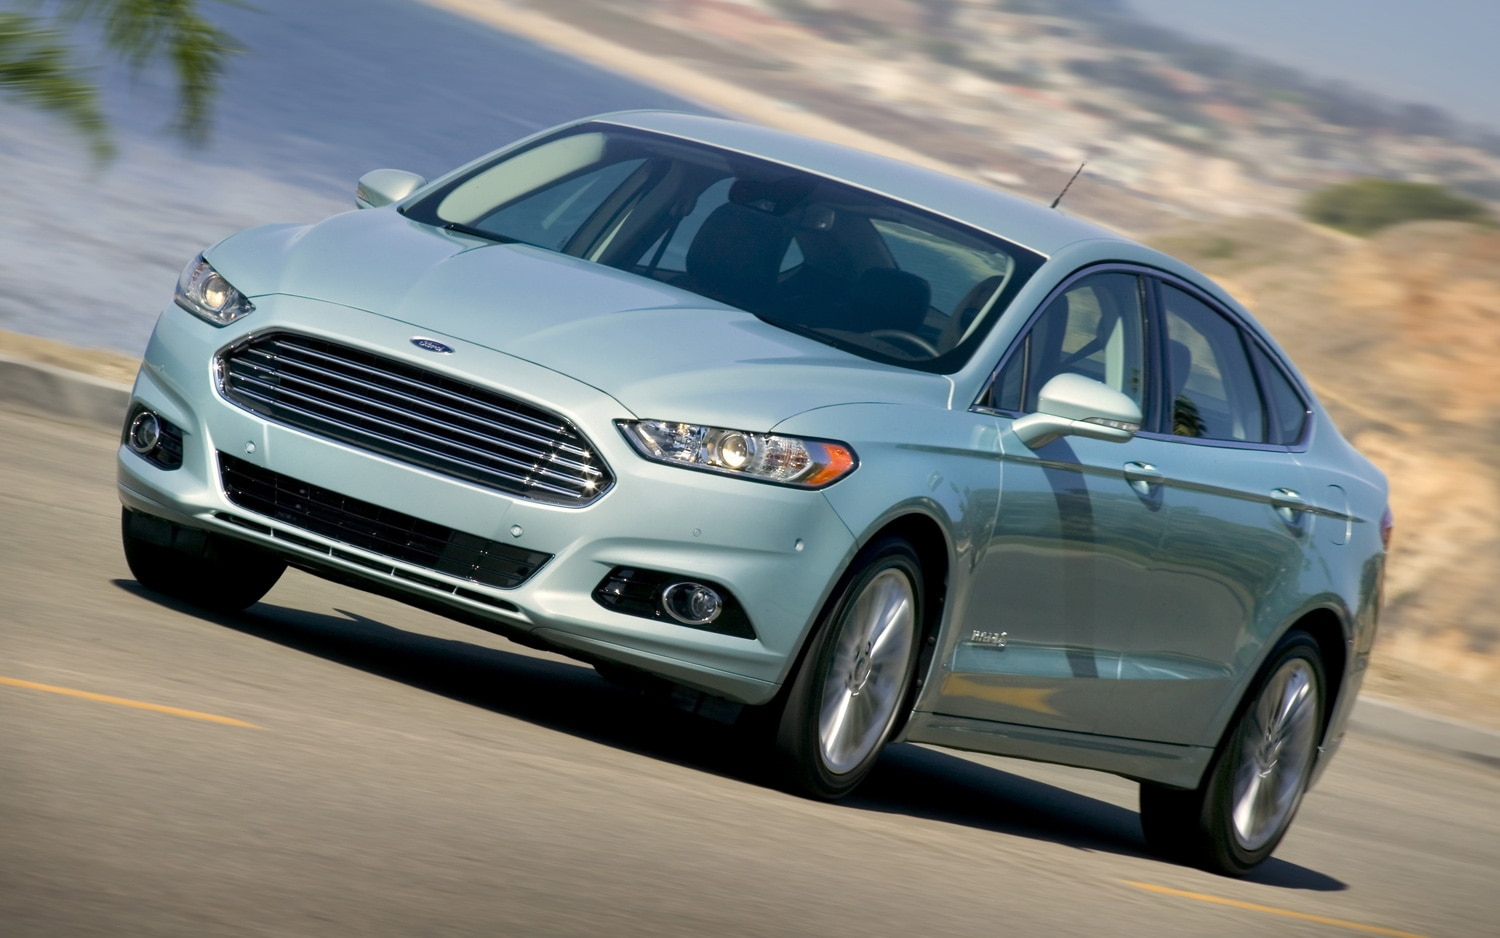 2013 Ford Fusion Hybrid Front Three Quarter111